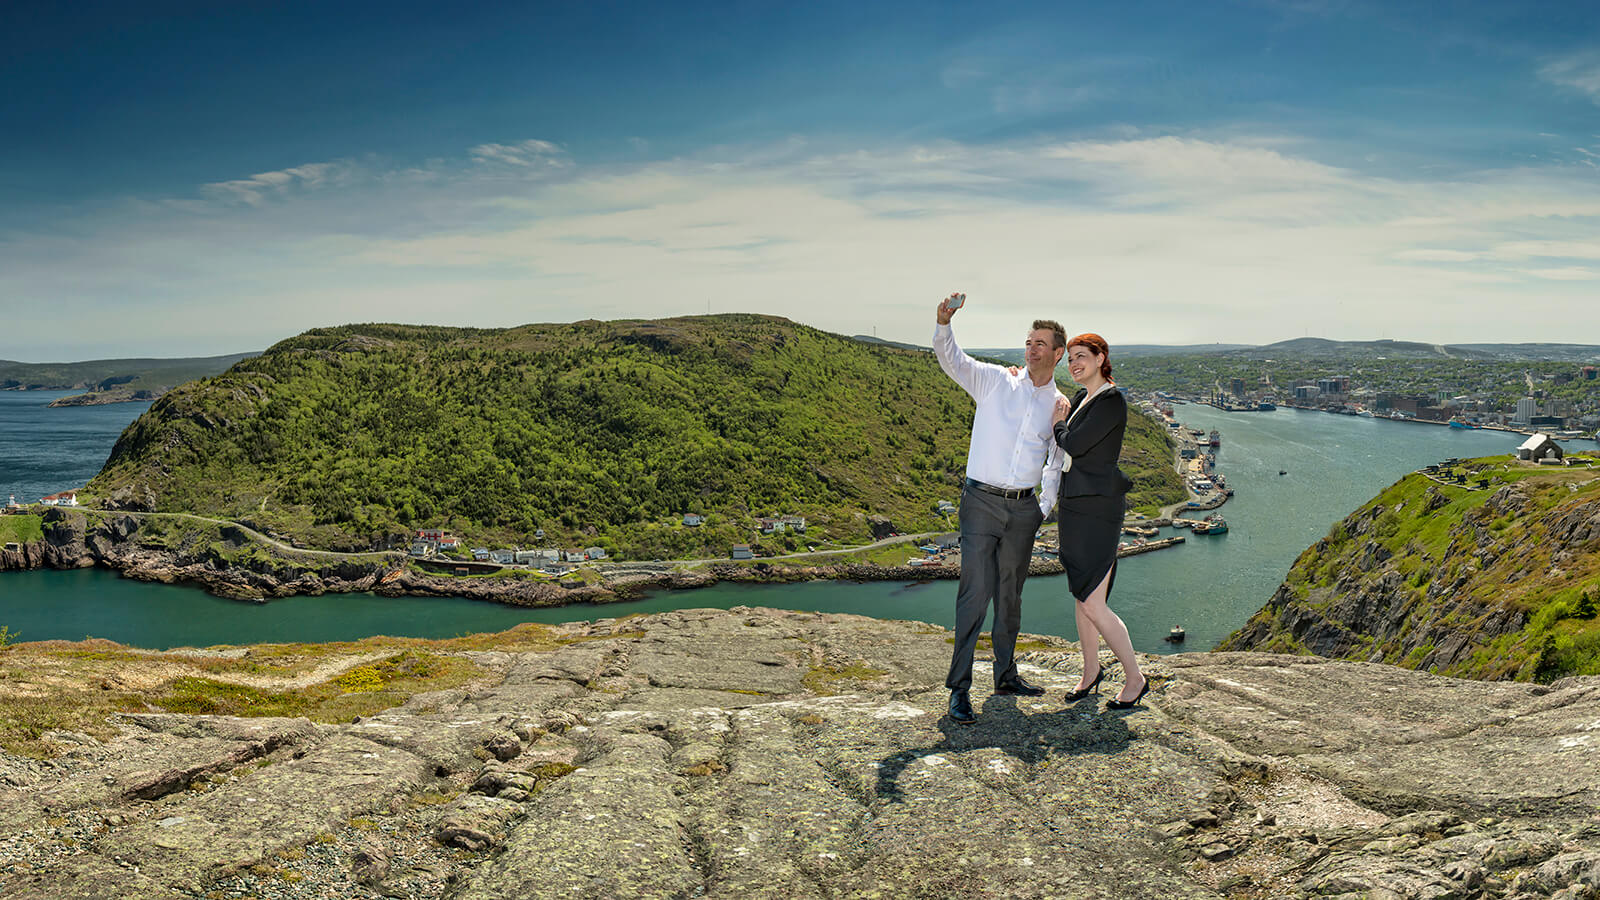 8 St. John's photo opps to blow up your feed - image